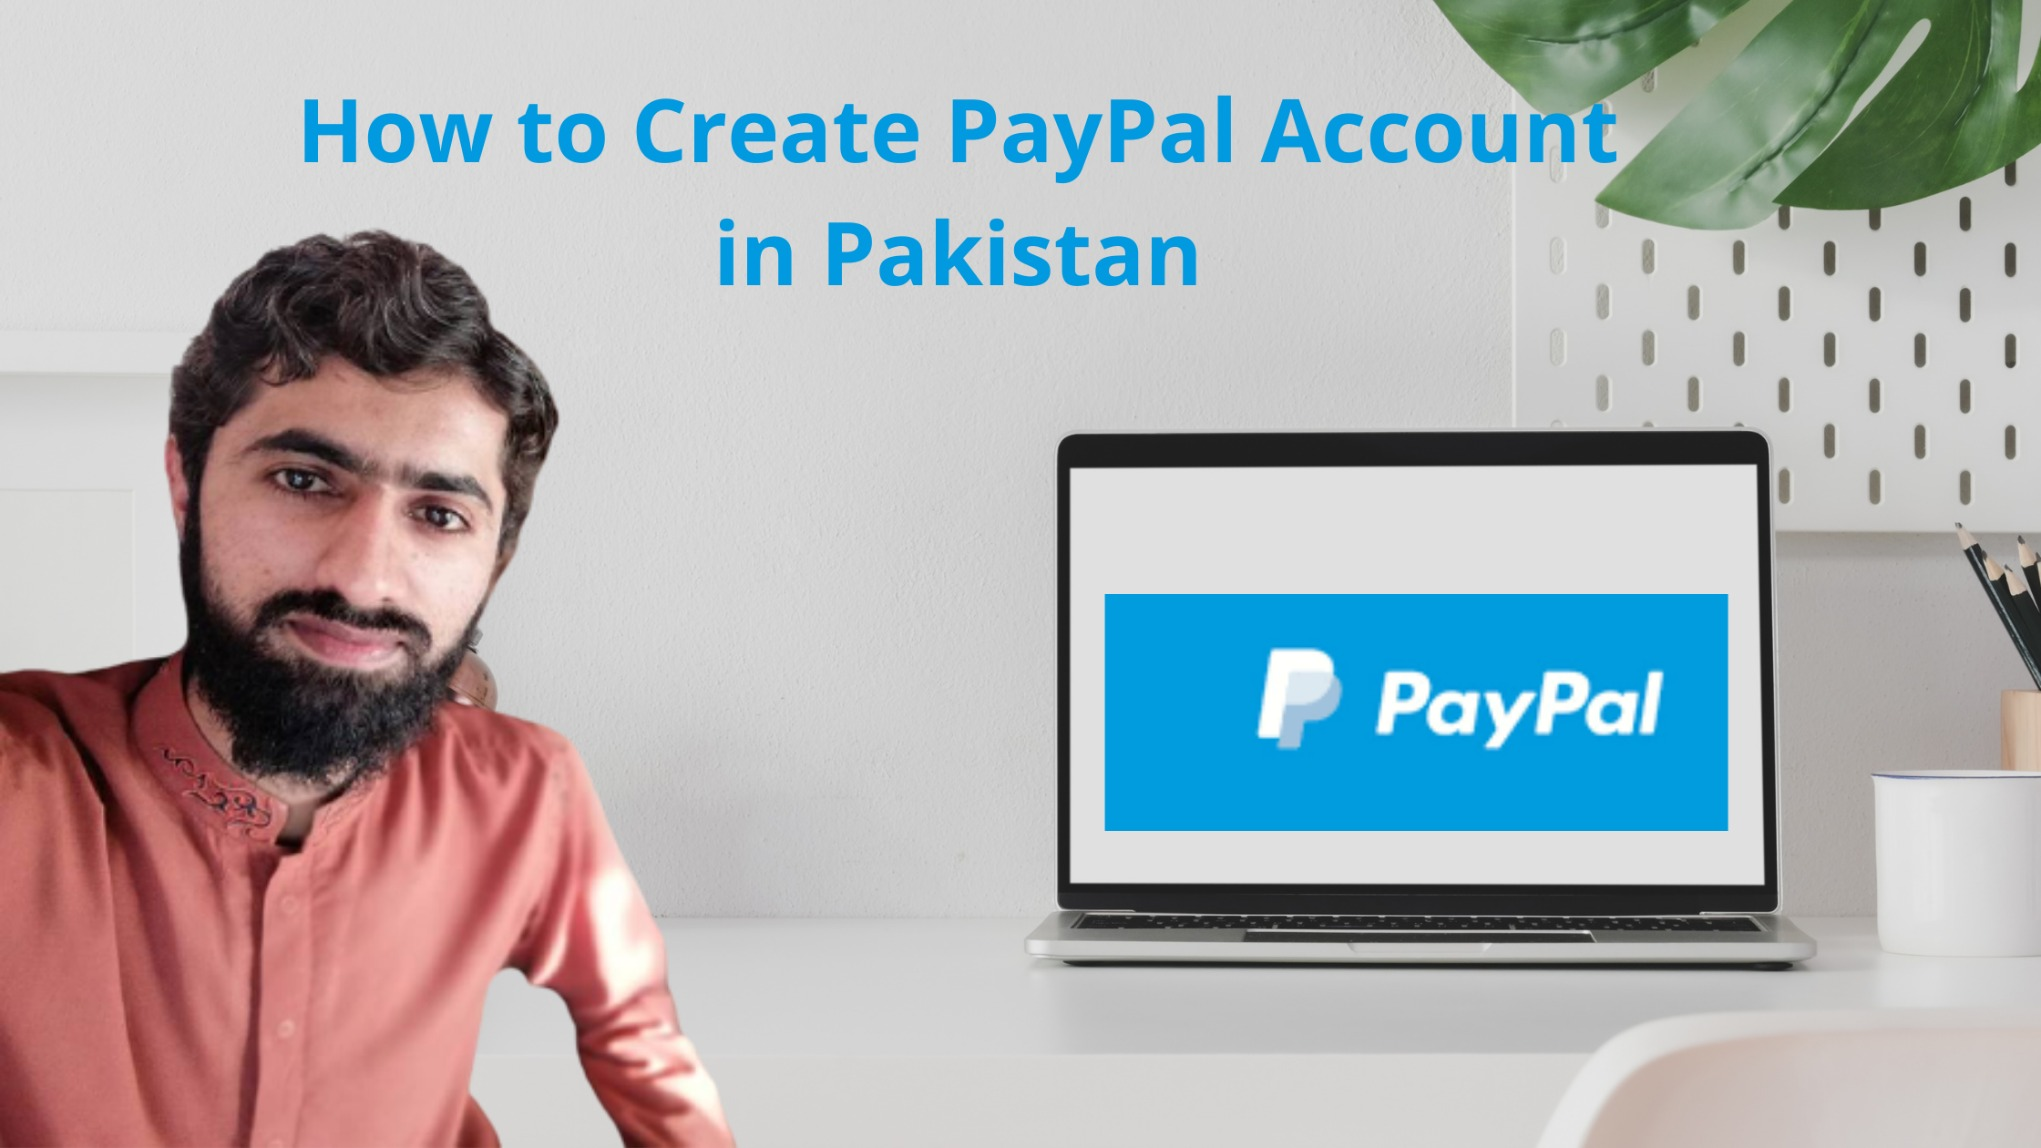 How to Create PayPal Account in Pakistan